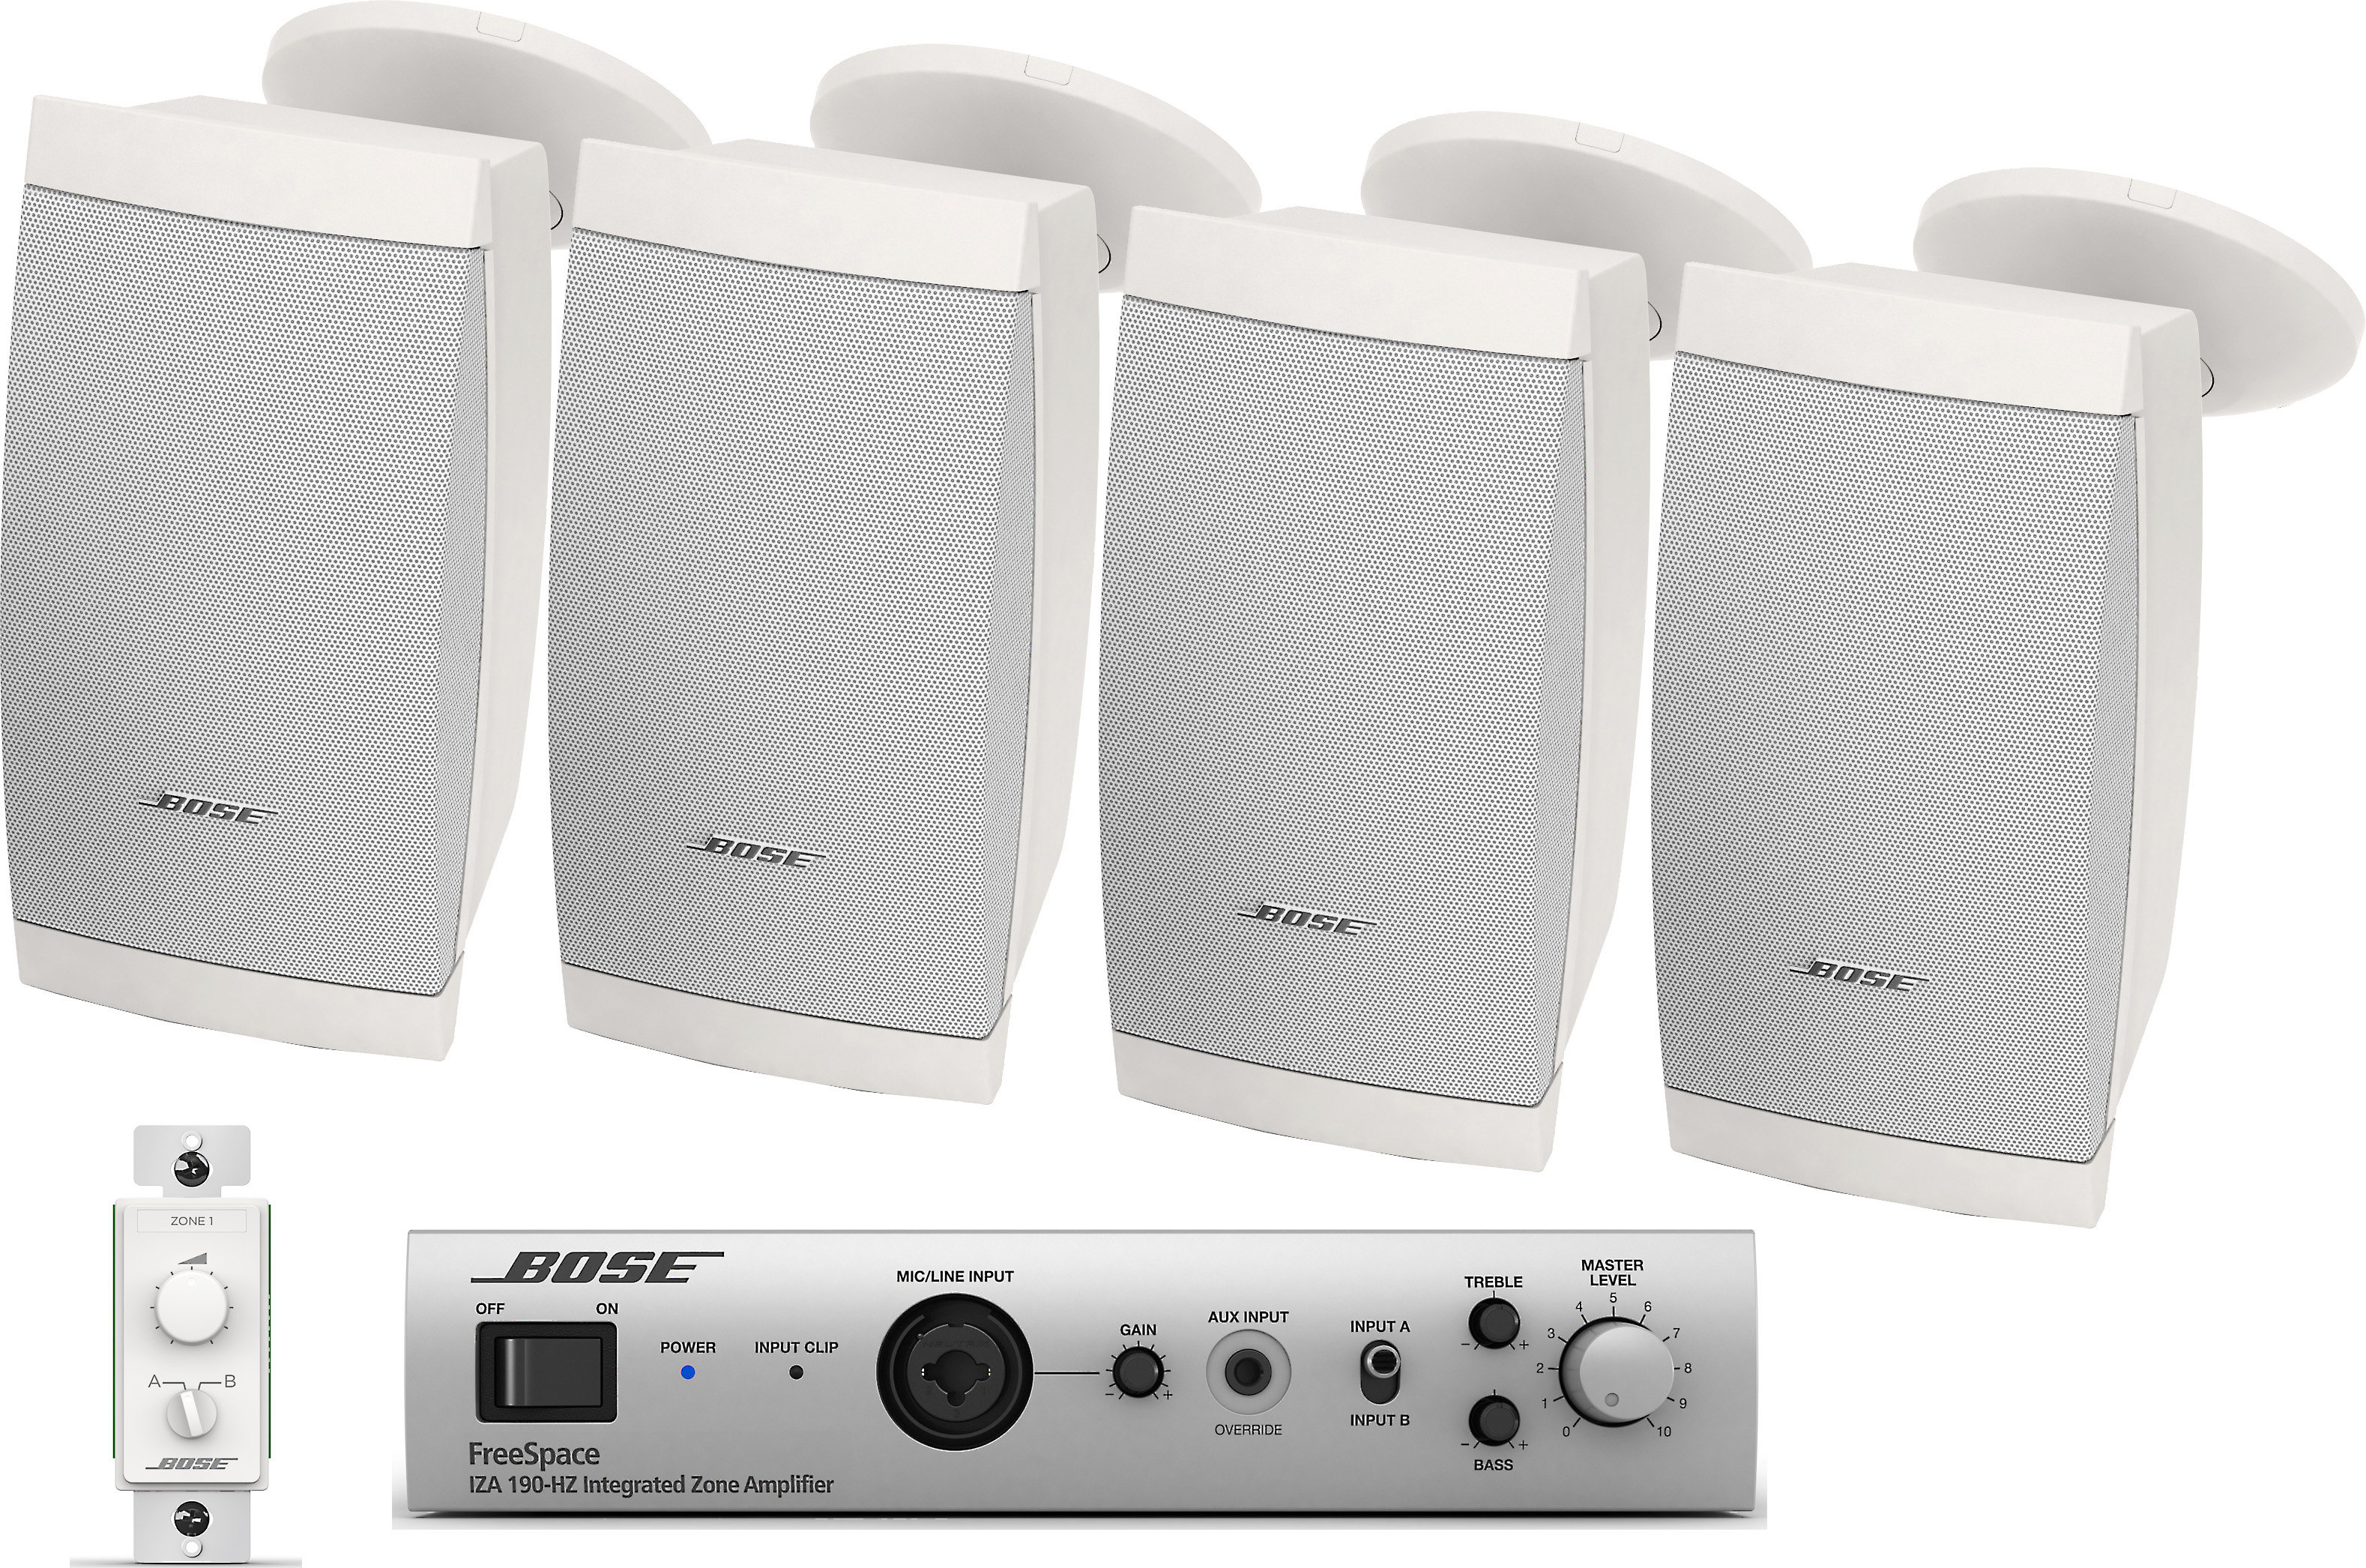 Bose Sound System >> Bose Retail Sound System Zone Amplifier Volume Control And Four